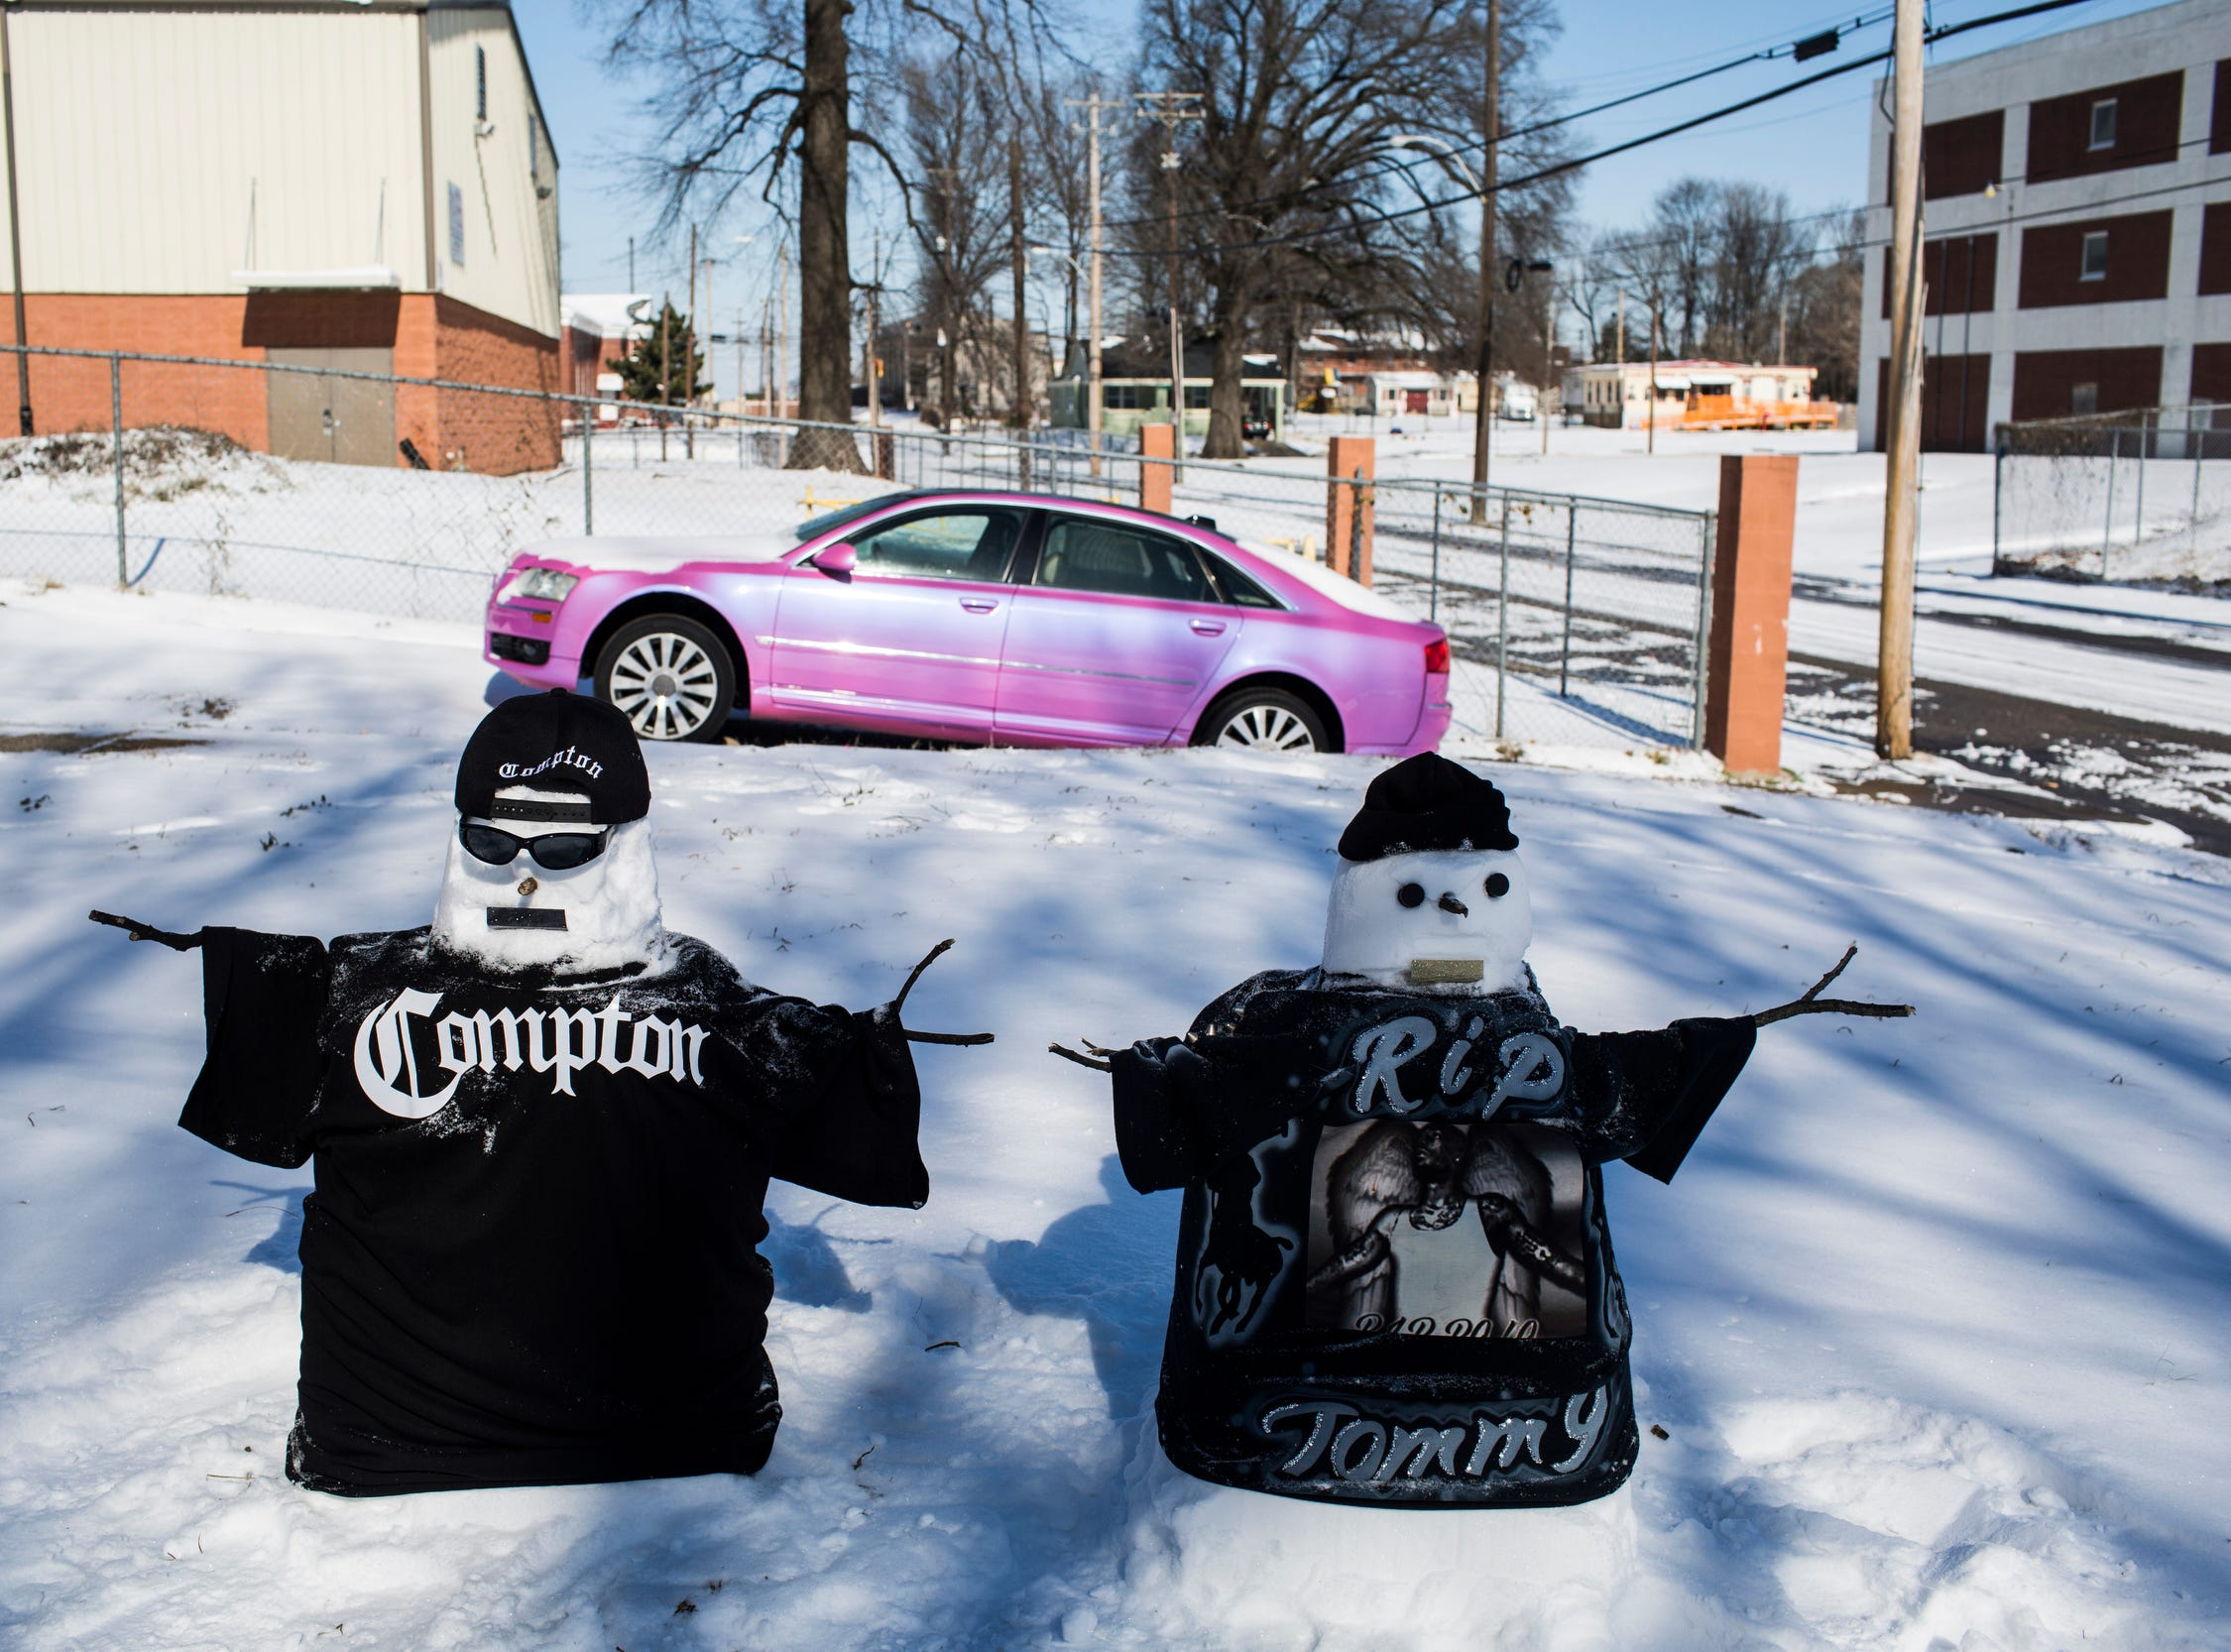 """January 16, 2018 - James Child created two snowmen on Tuesday to honor his friends that were shot and killed just a few blocks from his home on Sunday. """"I've known them since we were little bitty,"""" Child said about their friendship that first started when they met in Vance Middle School. """"I heard it was over a dice game and a misunderstanding. It just got out of hand,"""" Child said. Corey Evans and Teronzel Cox were shot and killed Sunday morning at the Cleaborn Pointe at Heritage Landing apartments."""